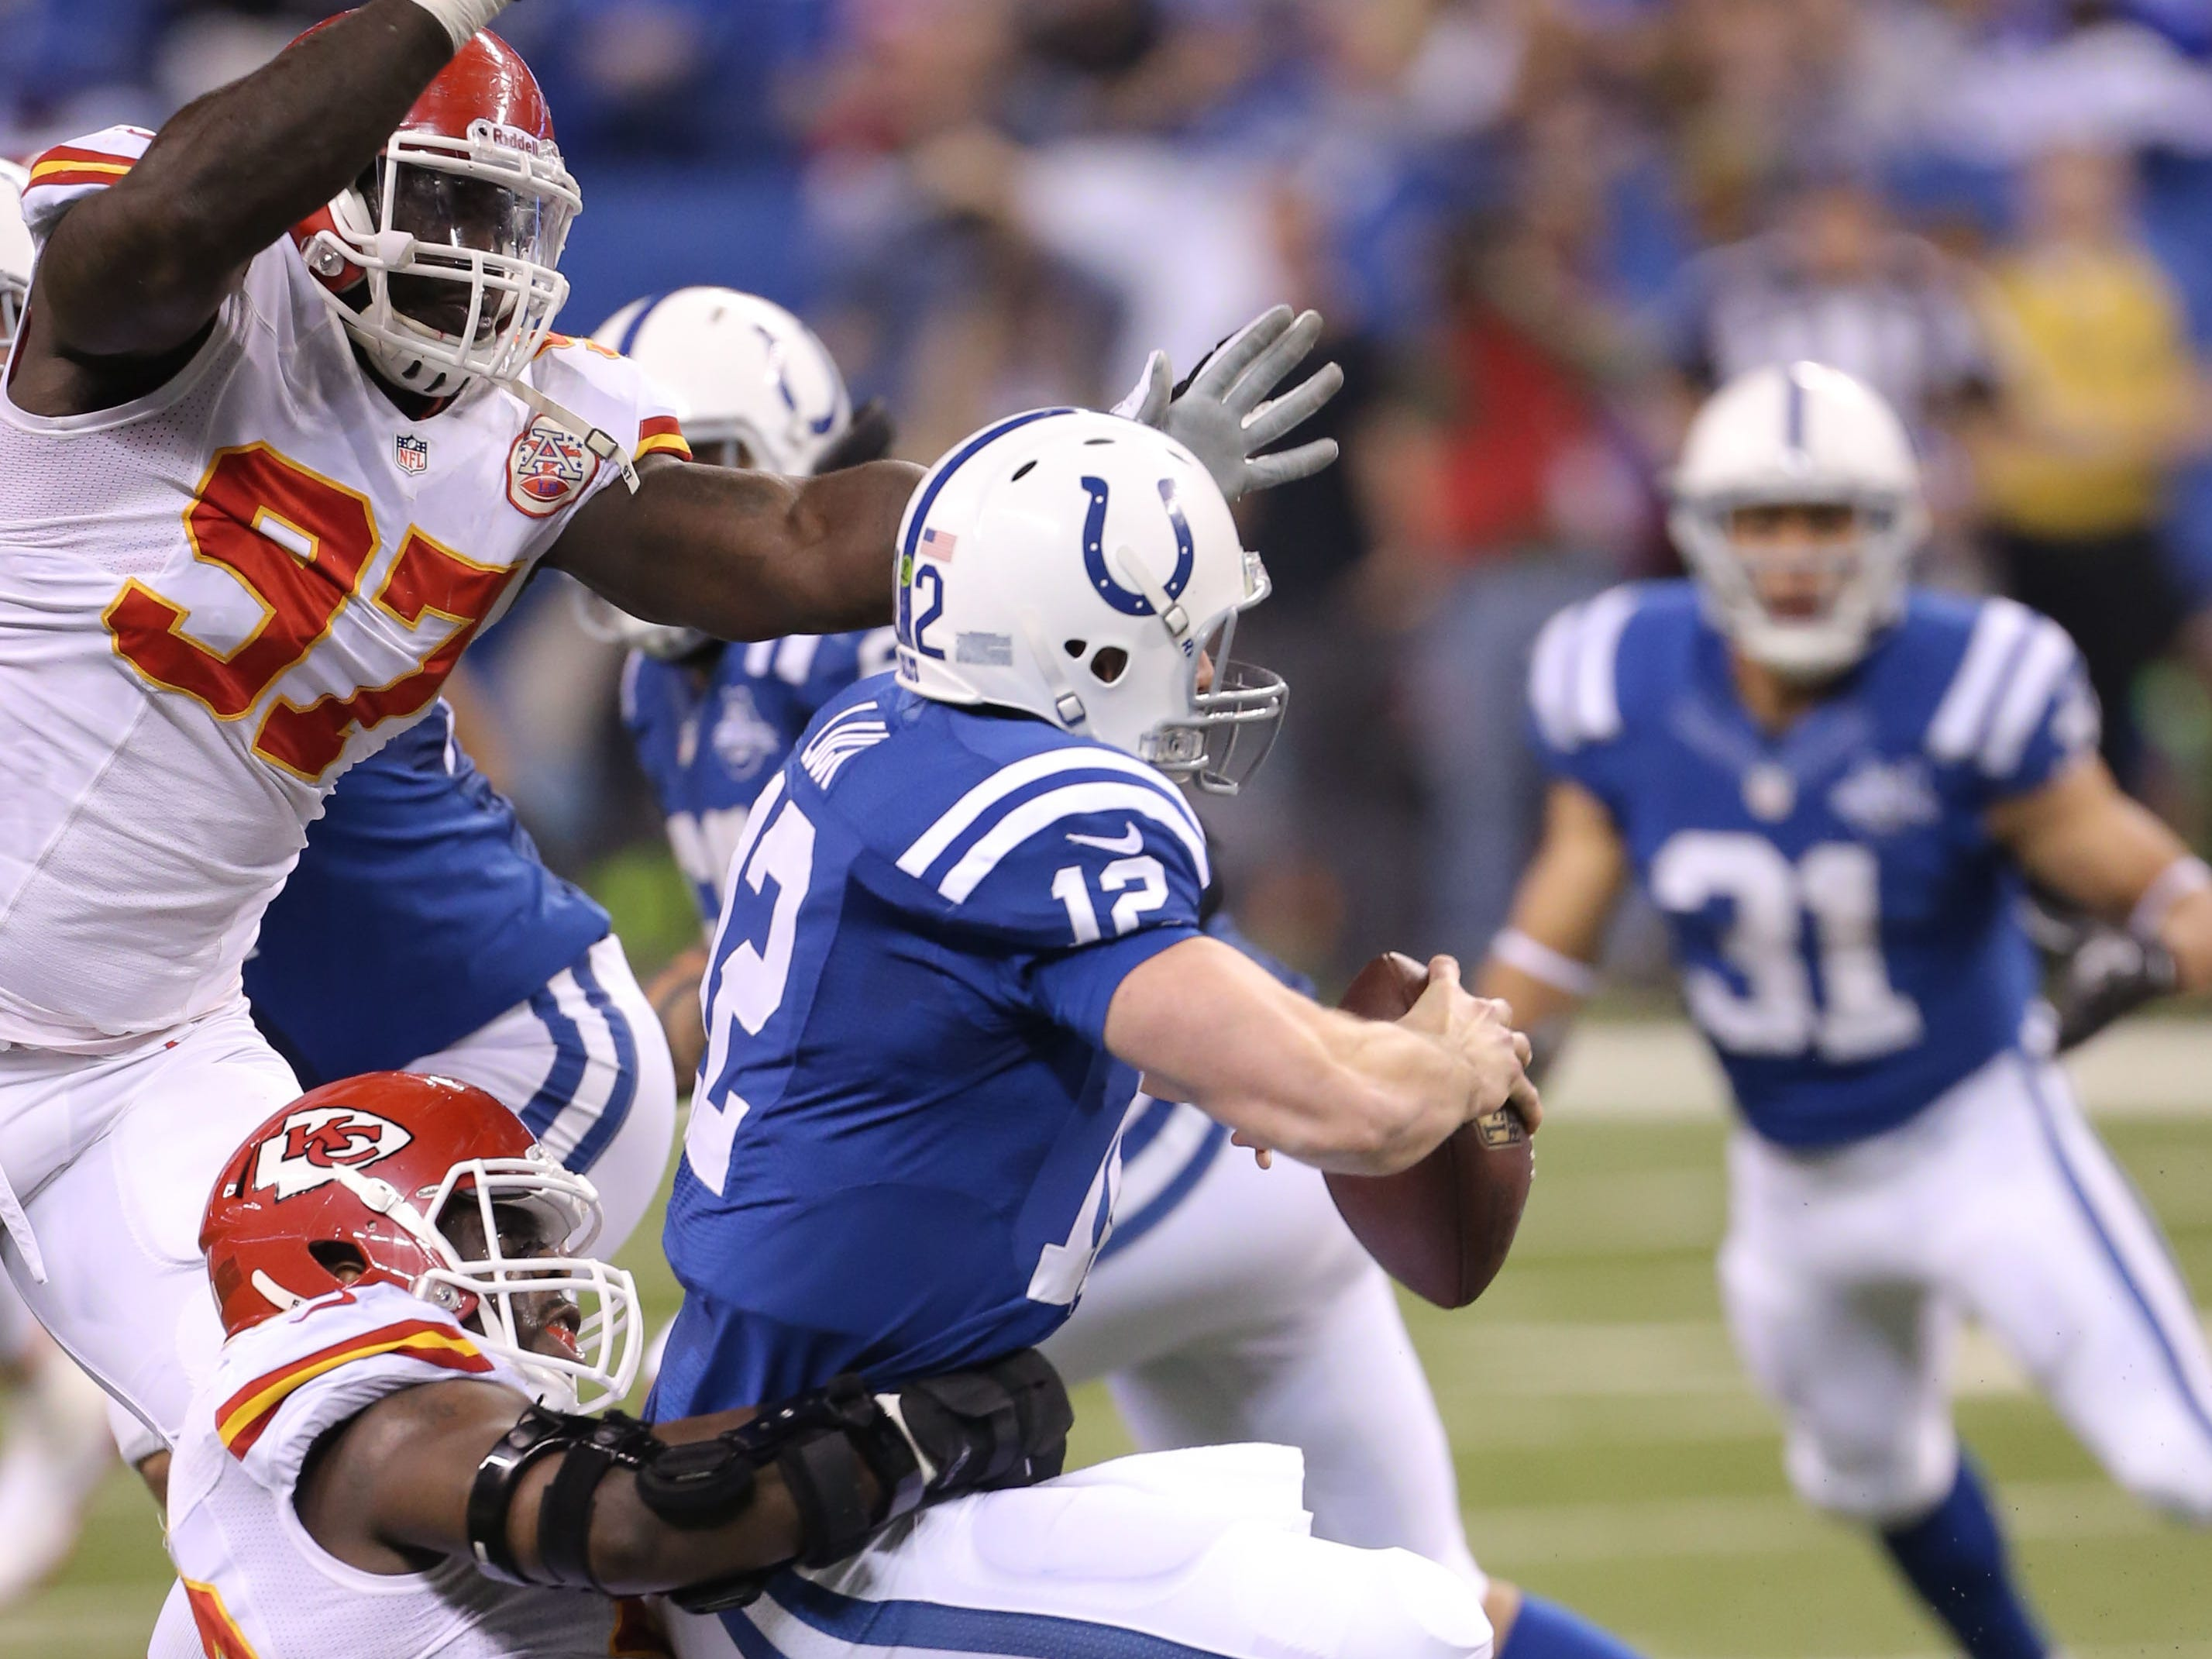 Indianapolis Colts Andrew Luck was  taken down by Kansas City Chiefs Justin Houston during the 2013 AFC Wildcard game  at Lucas Oil Stadium.